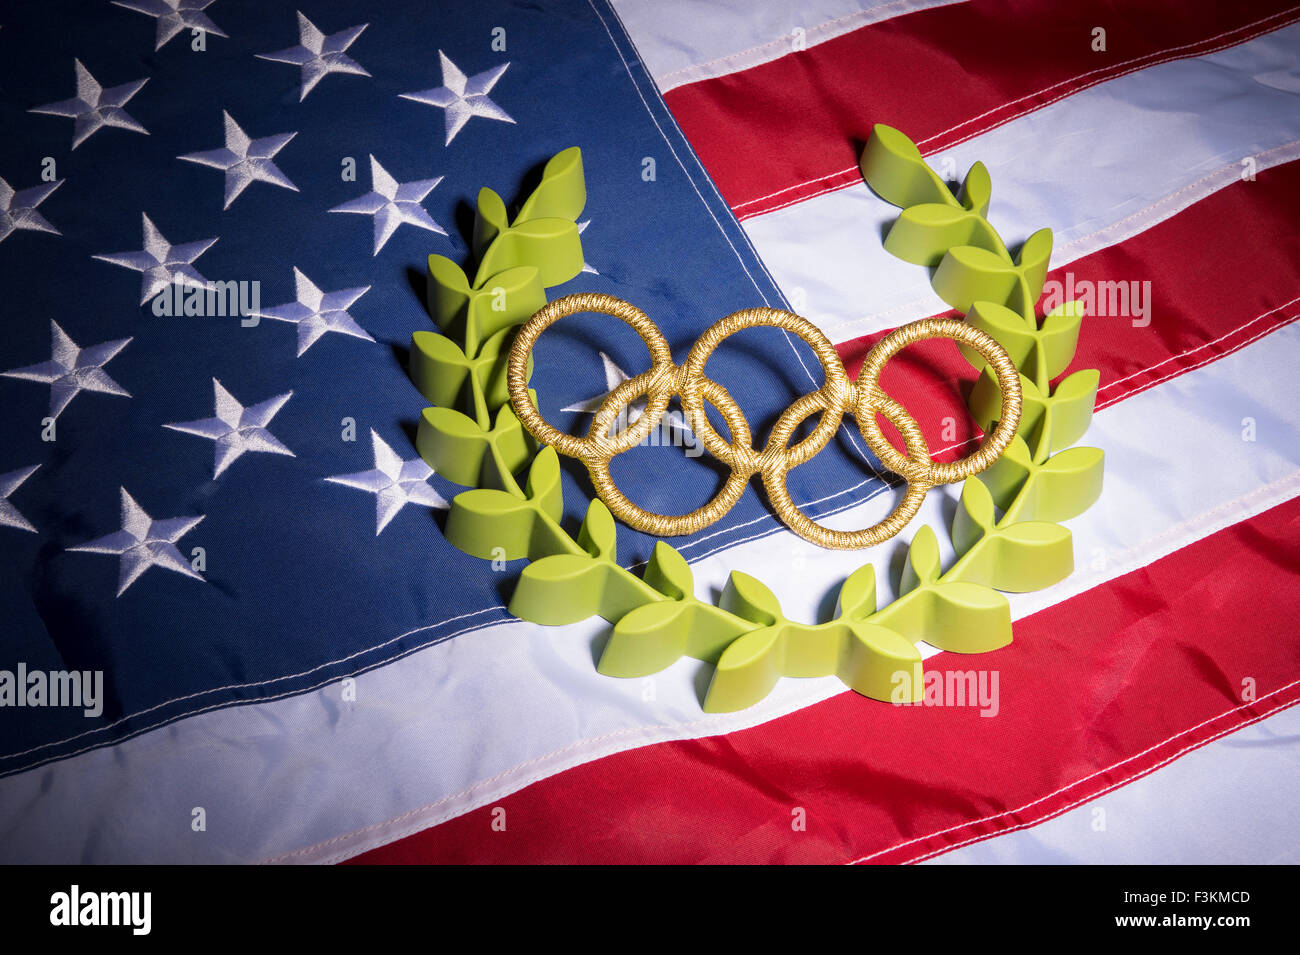 RIO DE JANEIRO, BRAZIL - FEBRUARY 3, 2015: Gold Olympic rings rest with laurel wreath on American flag background. - Stock Image